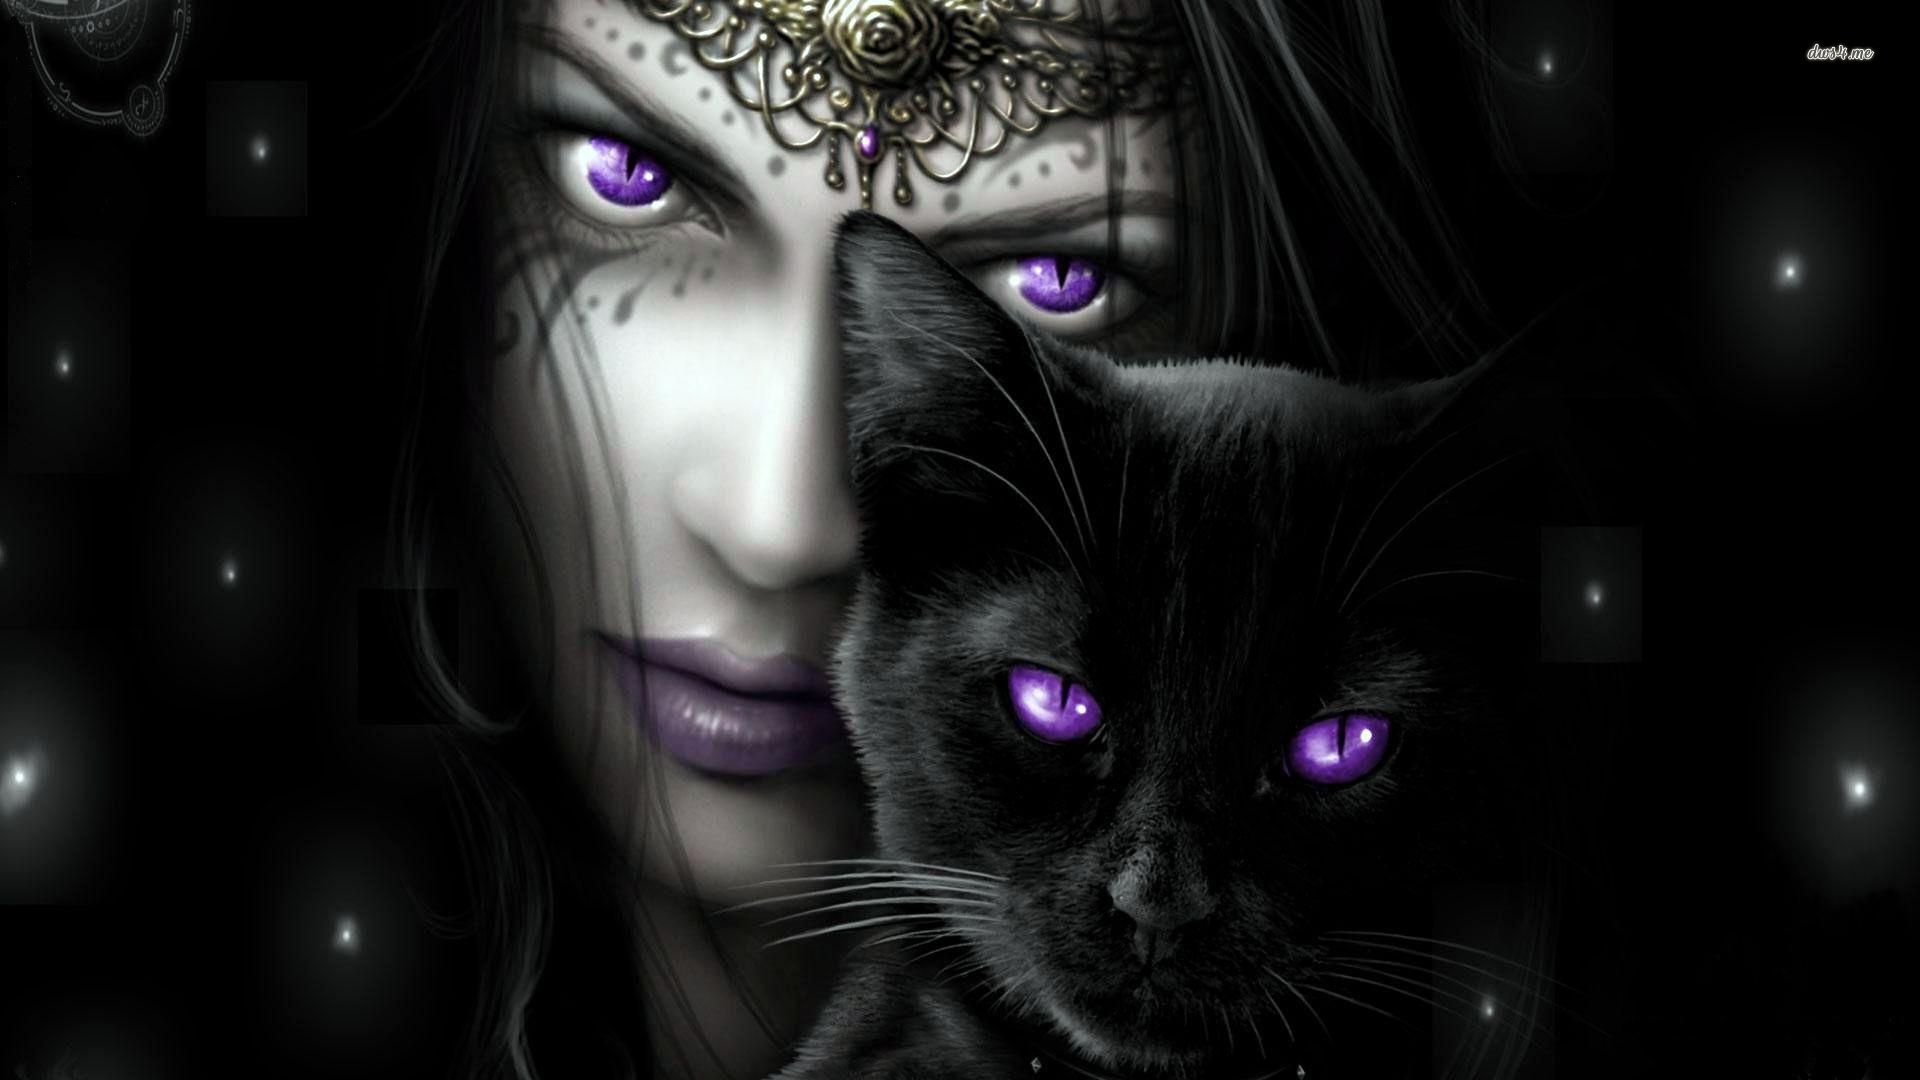 17938 purple eyed woman with her black cat 1920x1080 fantasy wallpaper